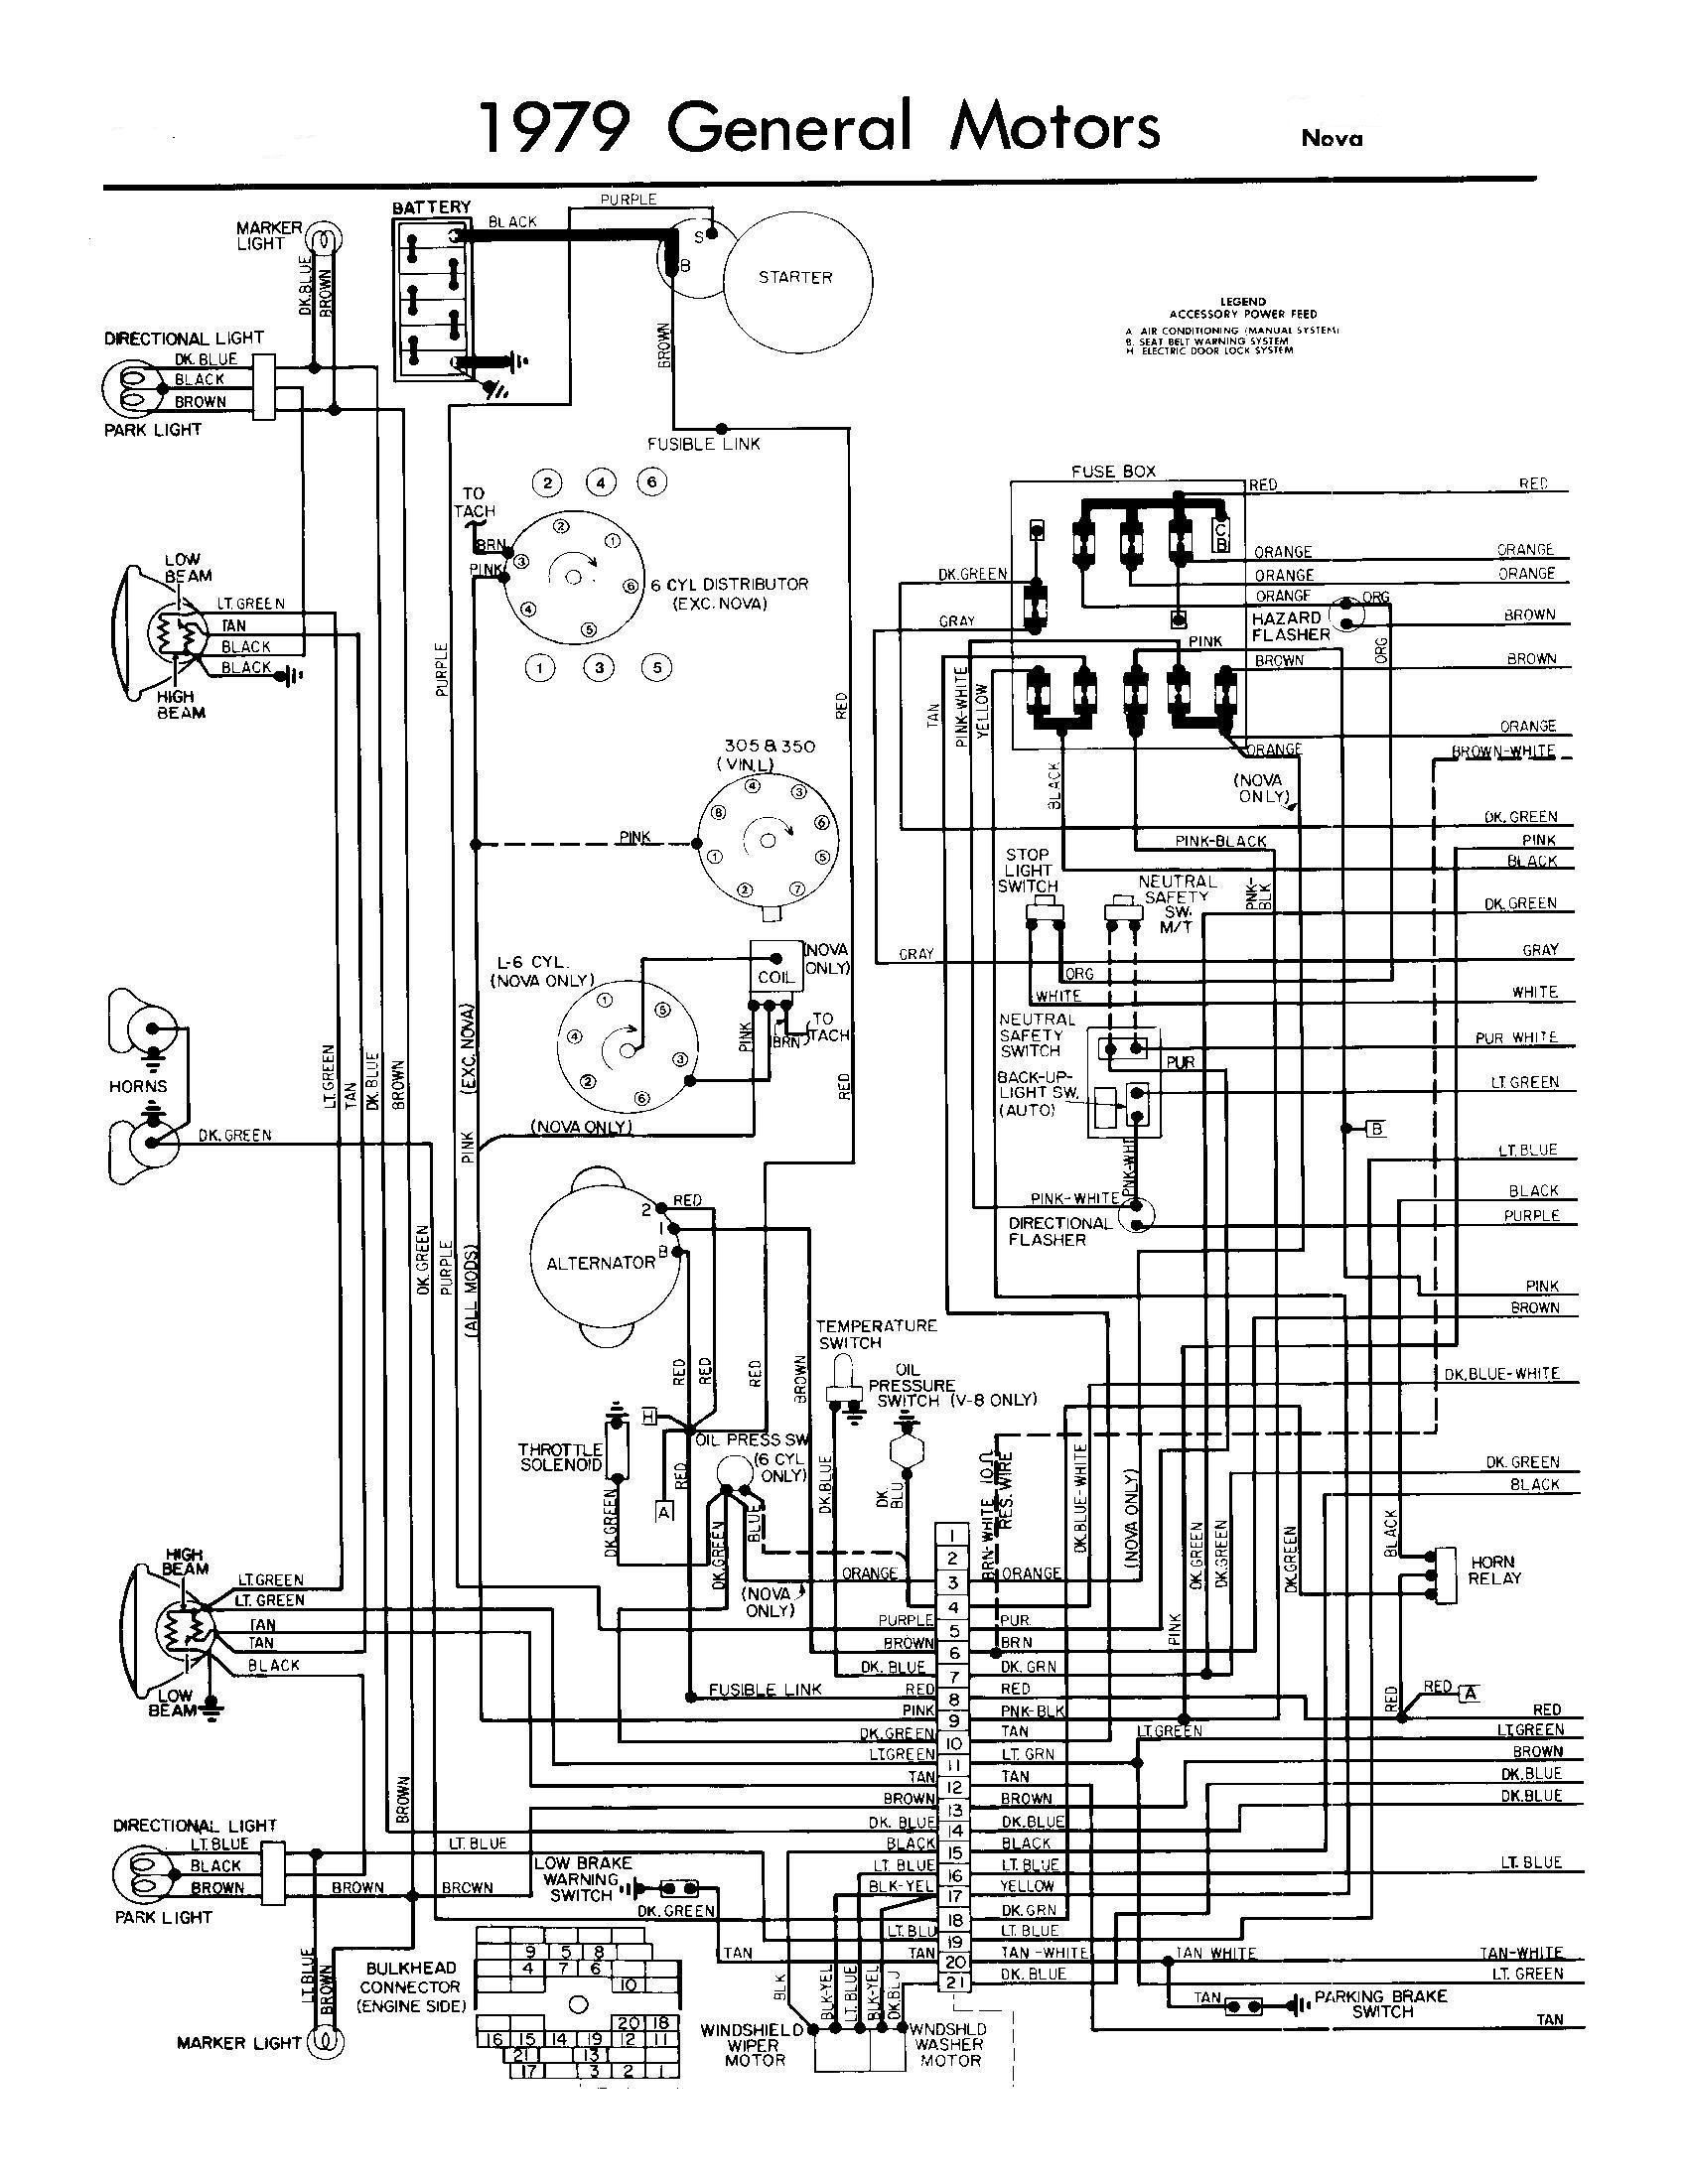 1985 Gmc Alternator Wiring Another Blog About Diagram Gs450 1977 Chevy Truck U2022 Rh Twosoutherndivas Co